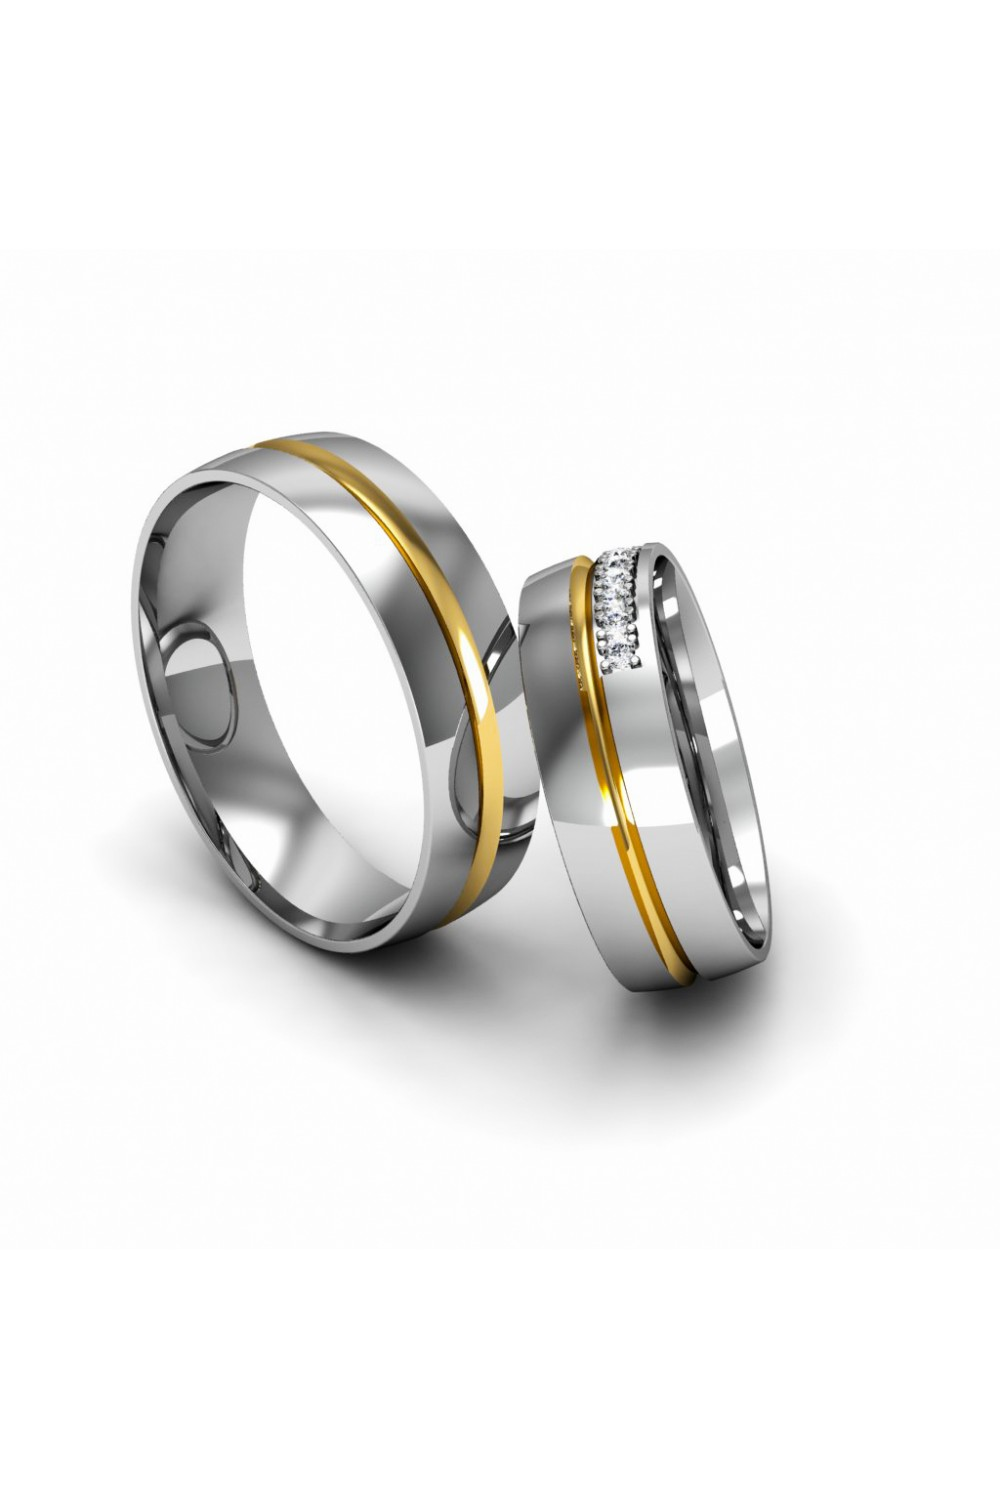 Elegant Modern YellowWhite Gold Wedding Ring